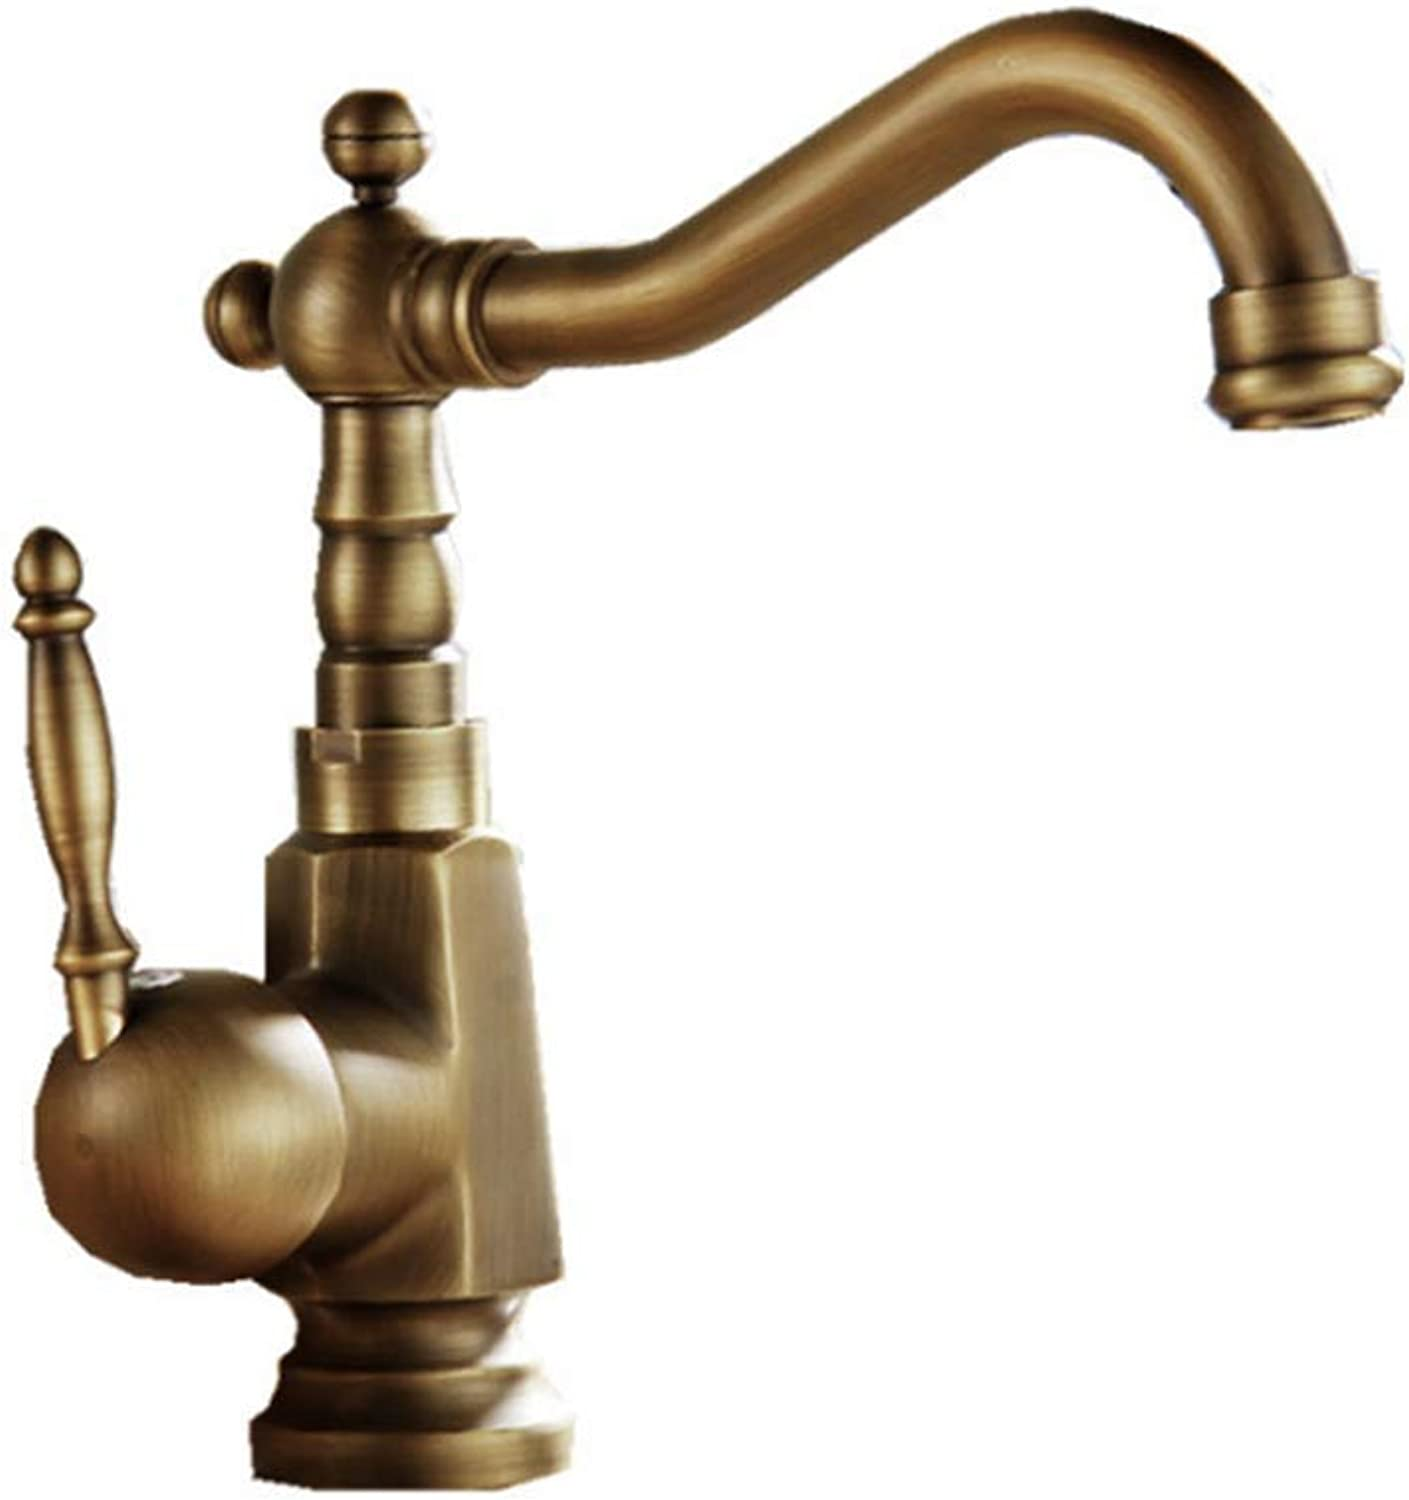 Yuhaijie Basin Tap Hot and Cold Retro Full Copper European Sink Mixer Tap